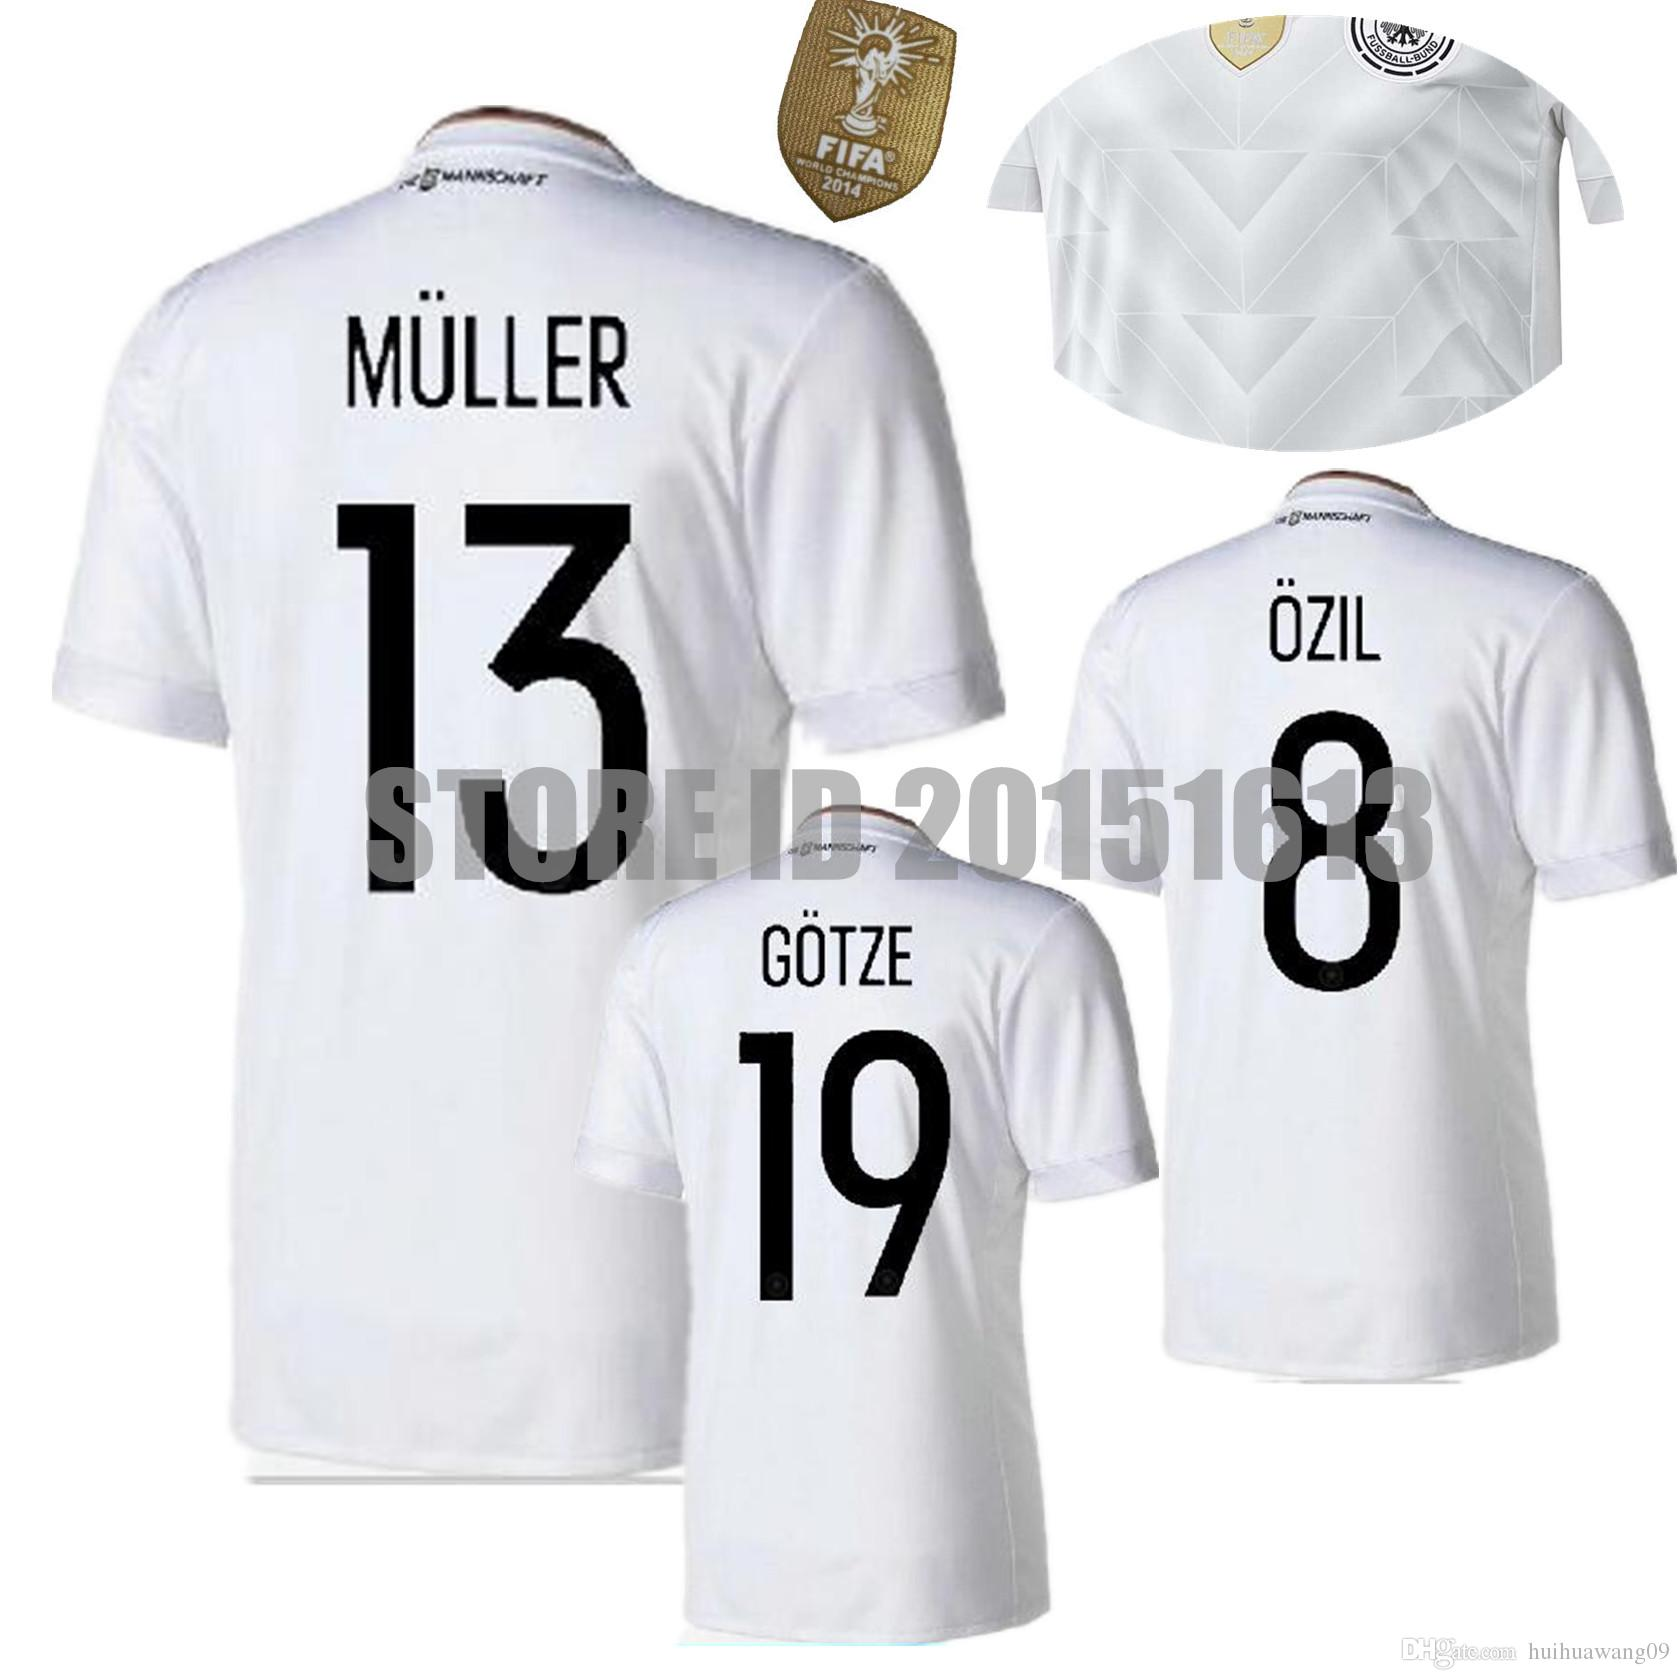 9efd804b3 ... 2017 2017 2018 Deutschlan Muller Jerseys Home White Germany Soccer  Jerseys Schweinsteiger Ozil Gotze Reus Kroos Authentic Bastian ...